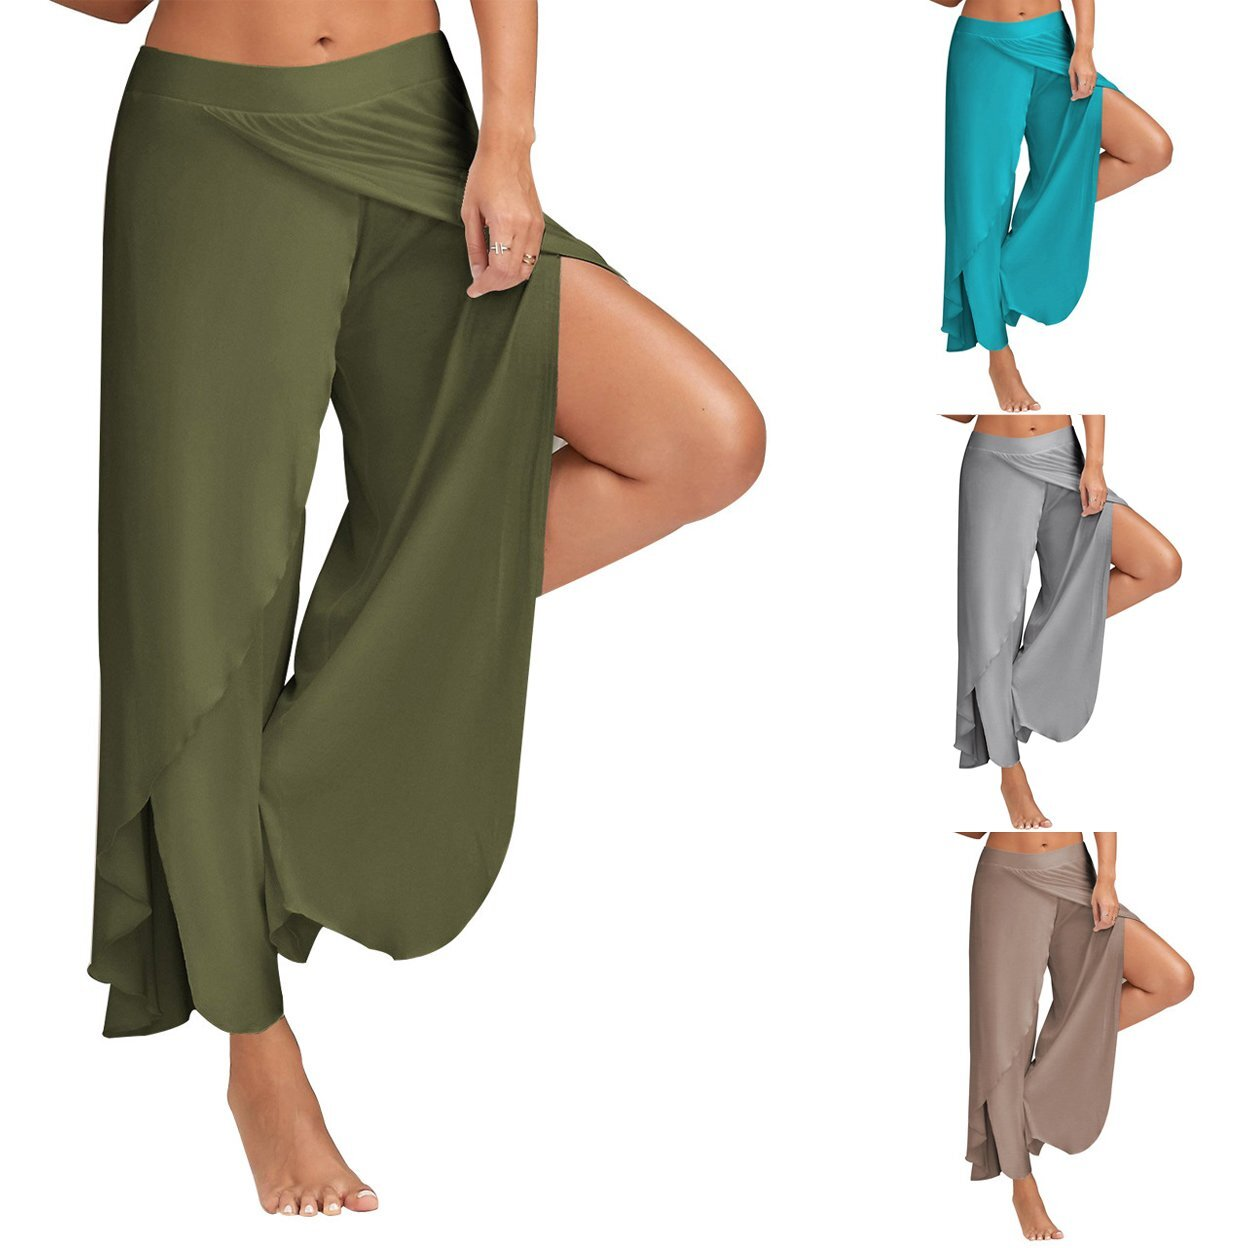 Tulipa Palazzo High Fashion Cocktail Pants -Size: 3x-Large, Color: Wine